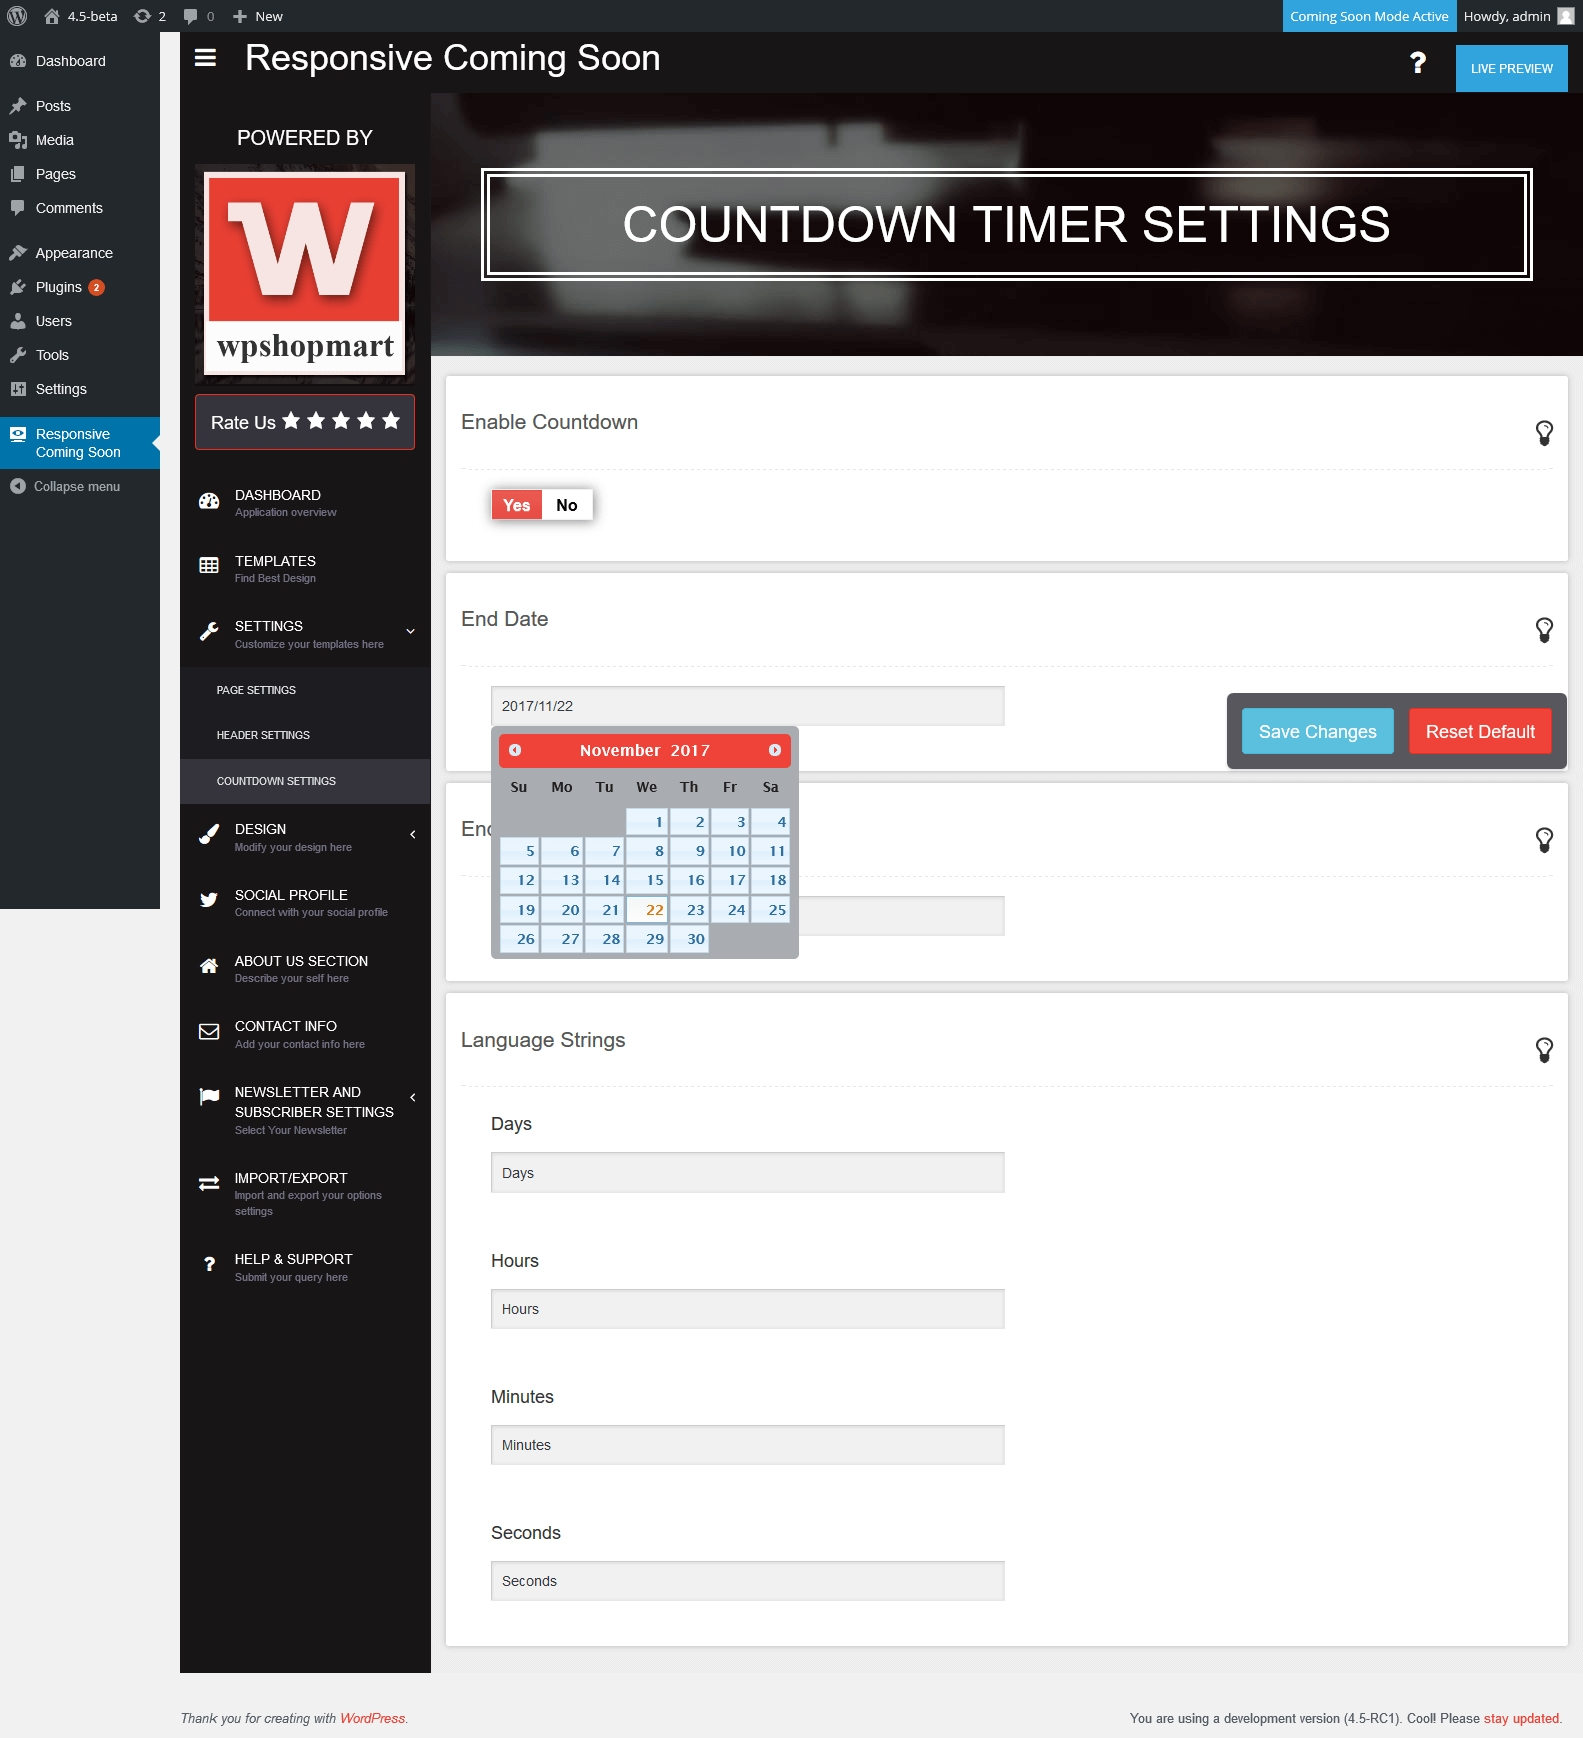 responsive-coming-soon-countdown-timer-settings